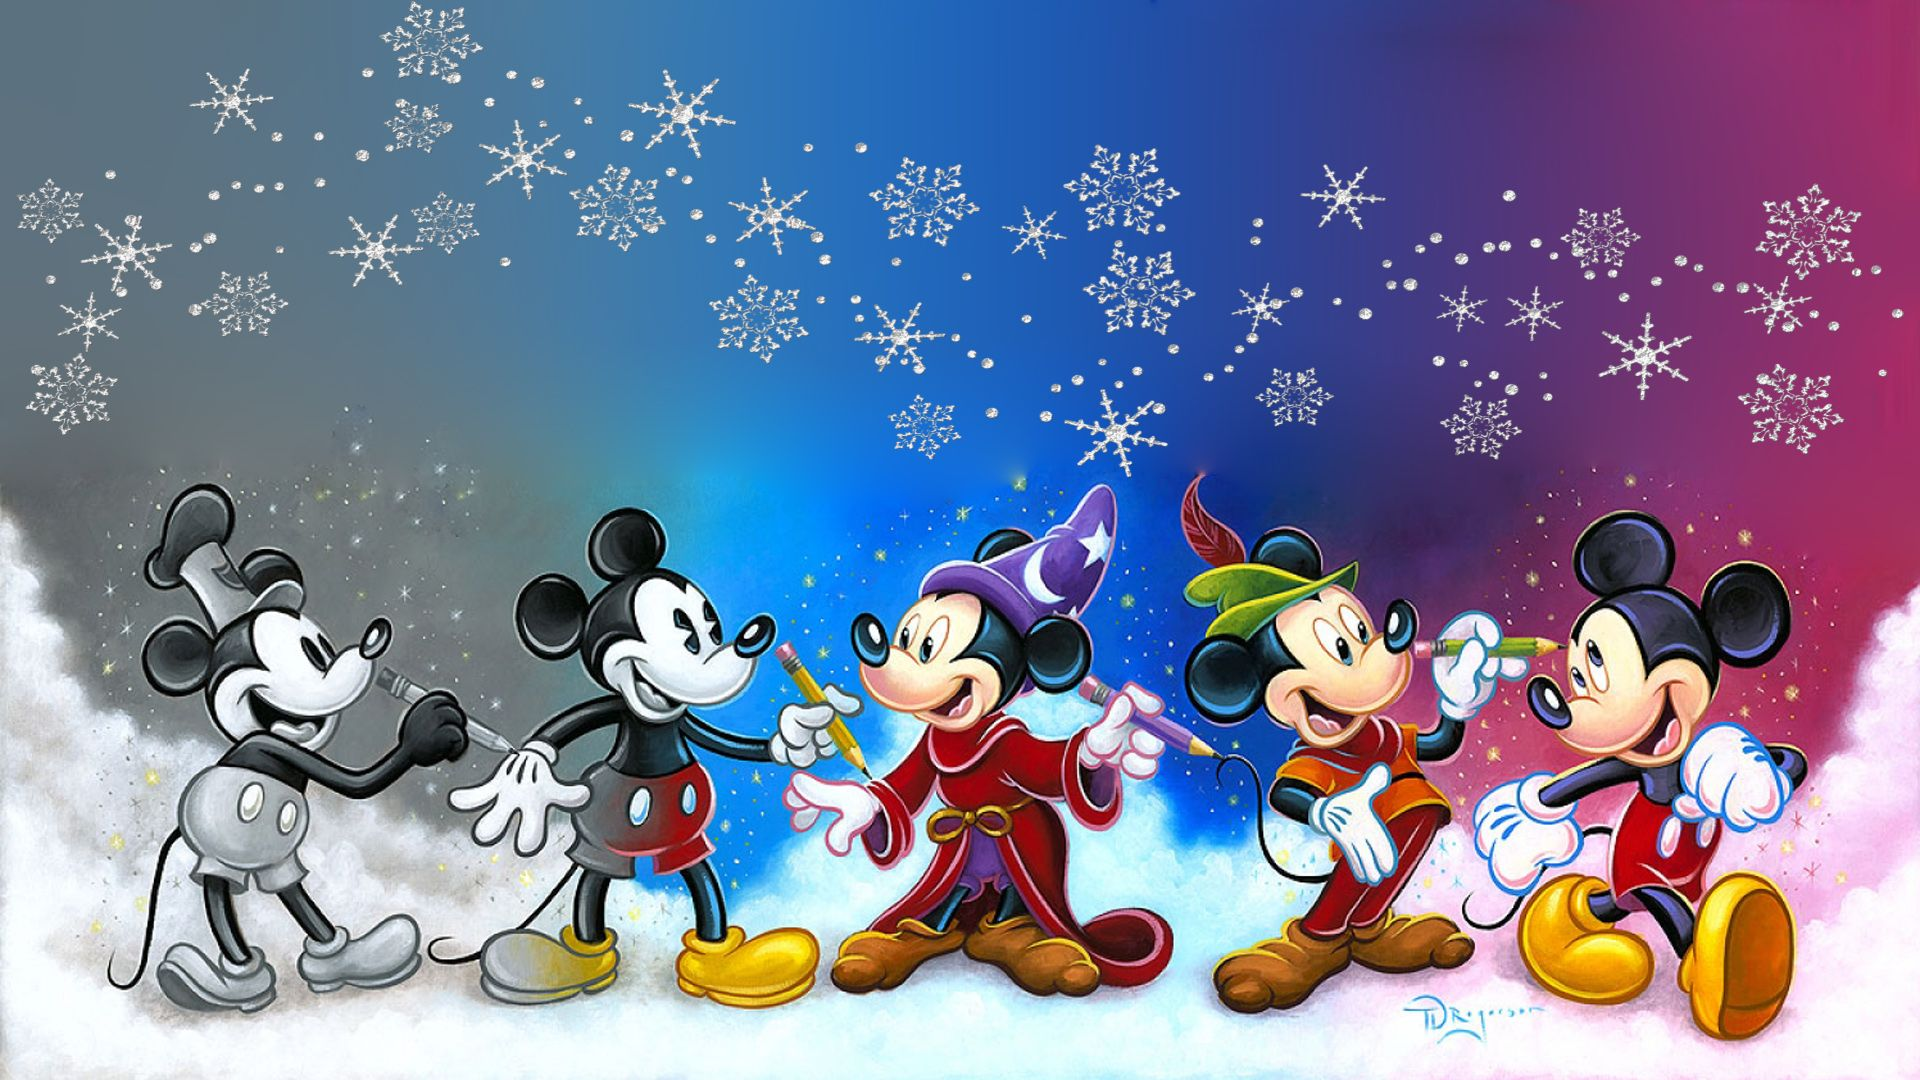 mickey mouse desktop wallpapers top free mickey mouse desktop backgrounds wallpaperaccess mickey mouse desktop wallpapers top